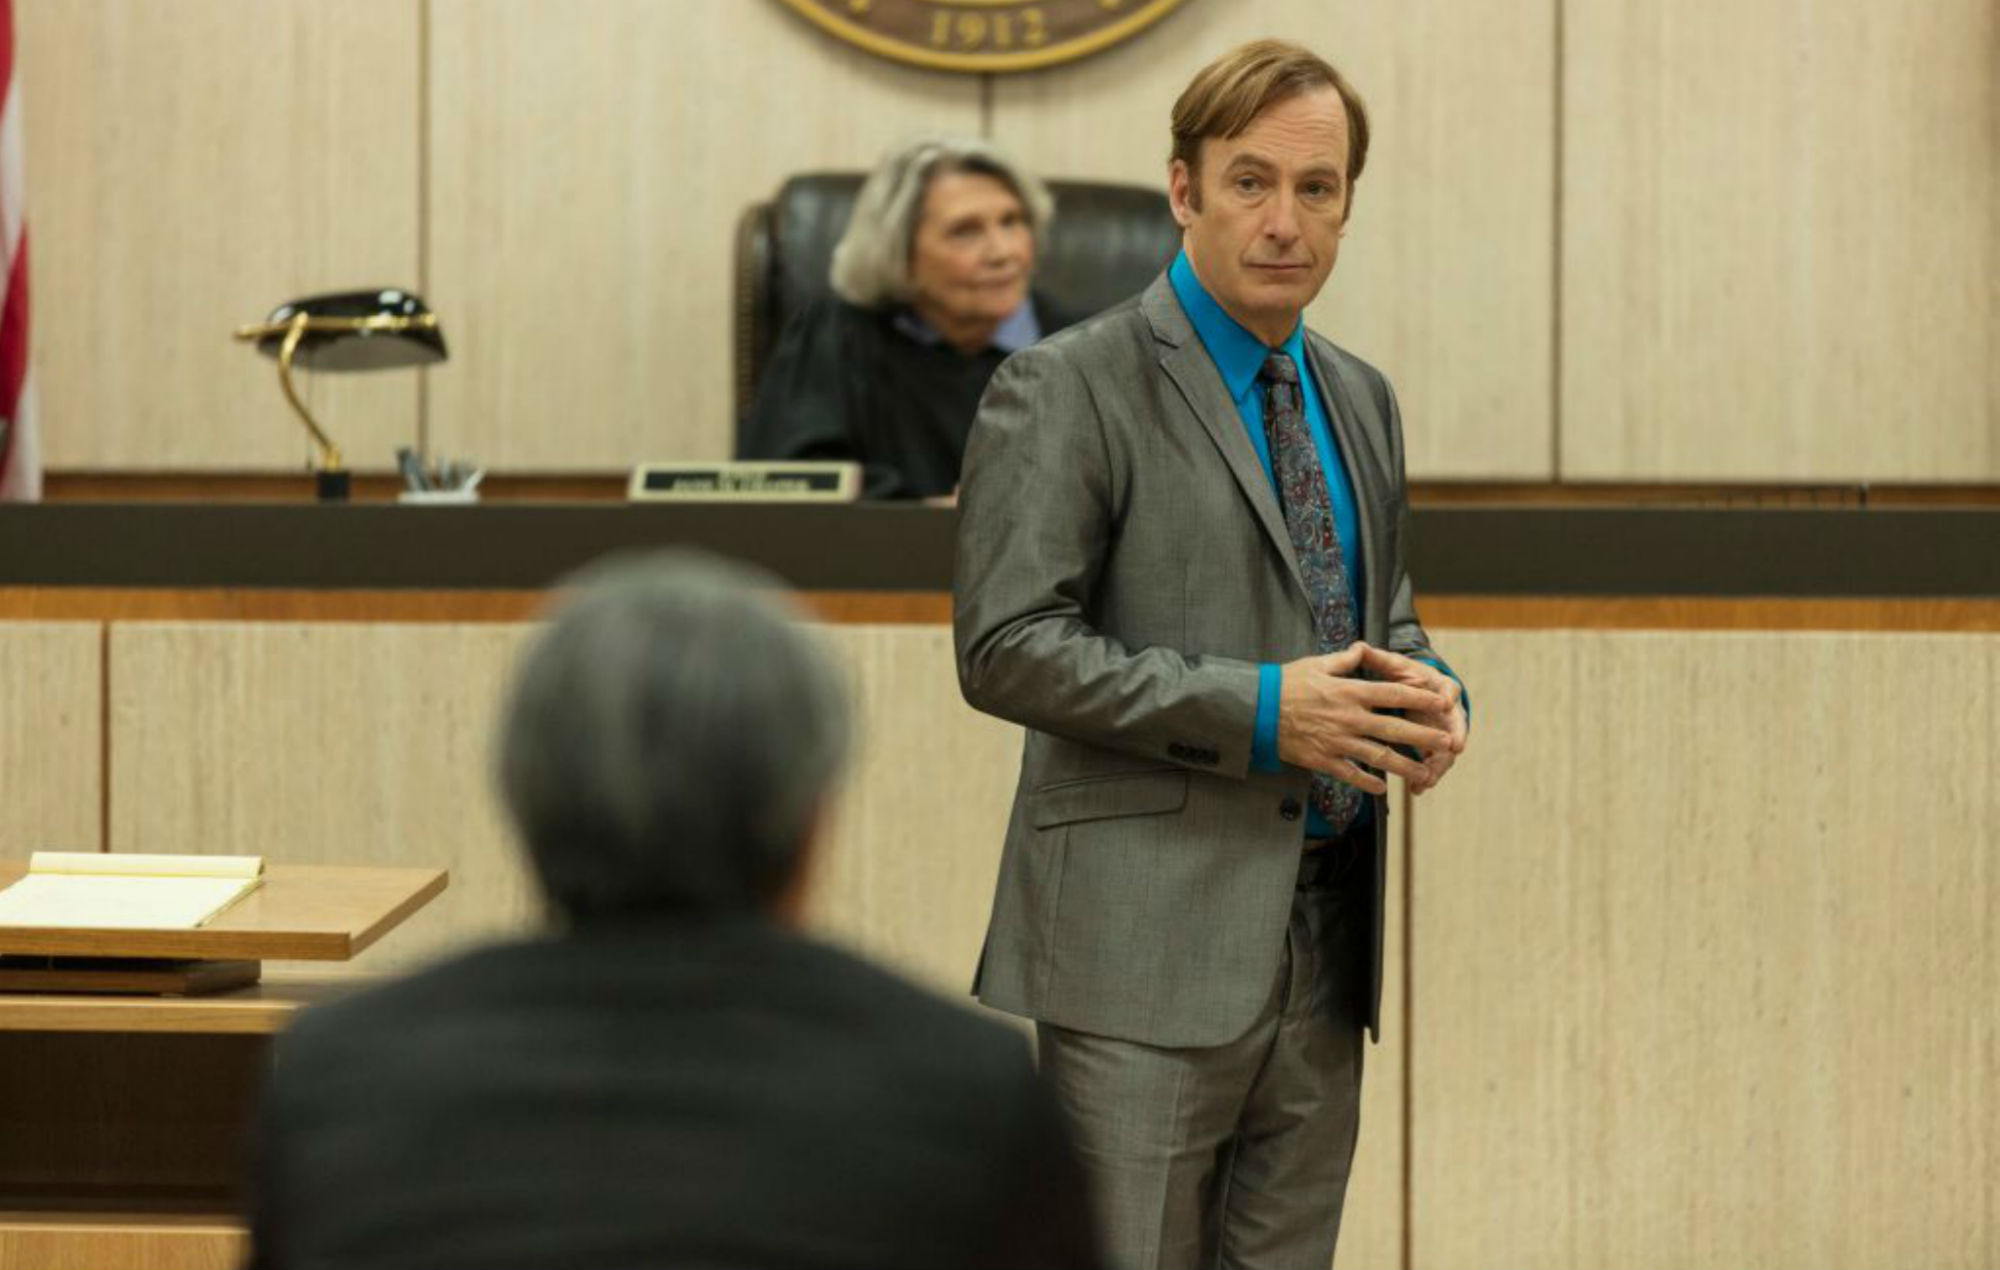 Watch the new teaser trailer for Season 5 of 'Better Call Saul'